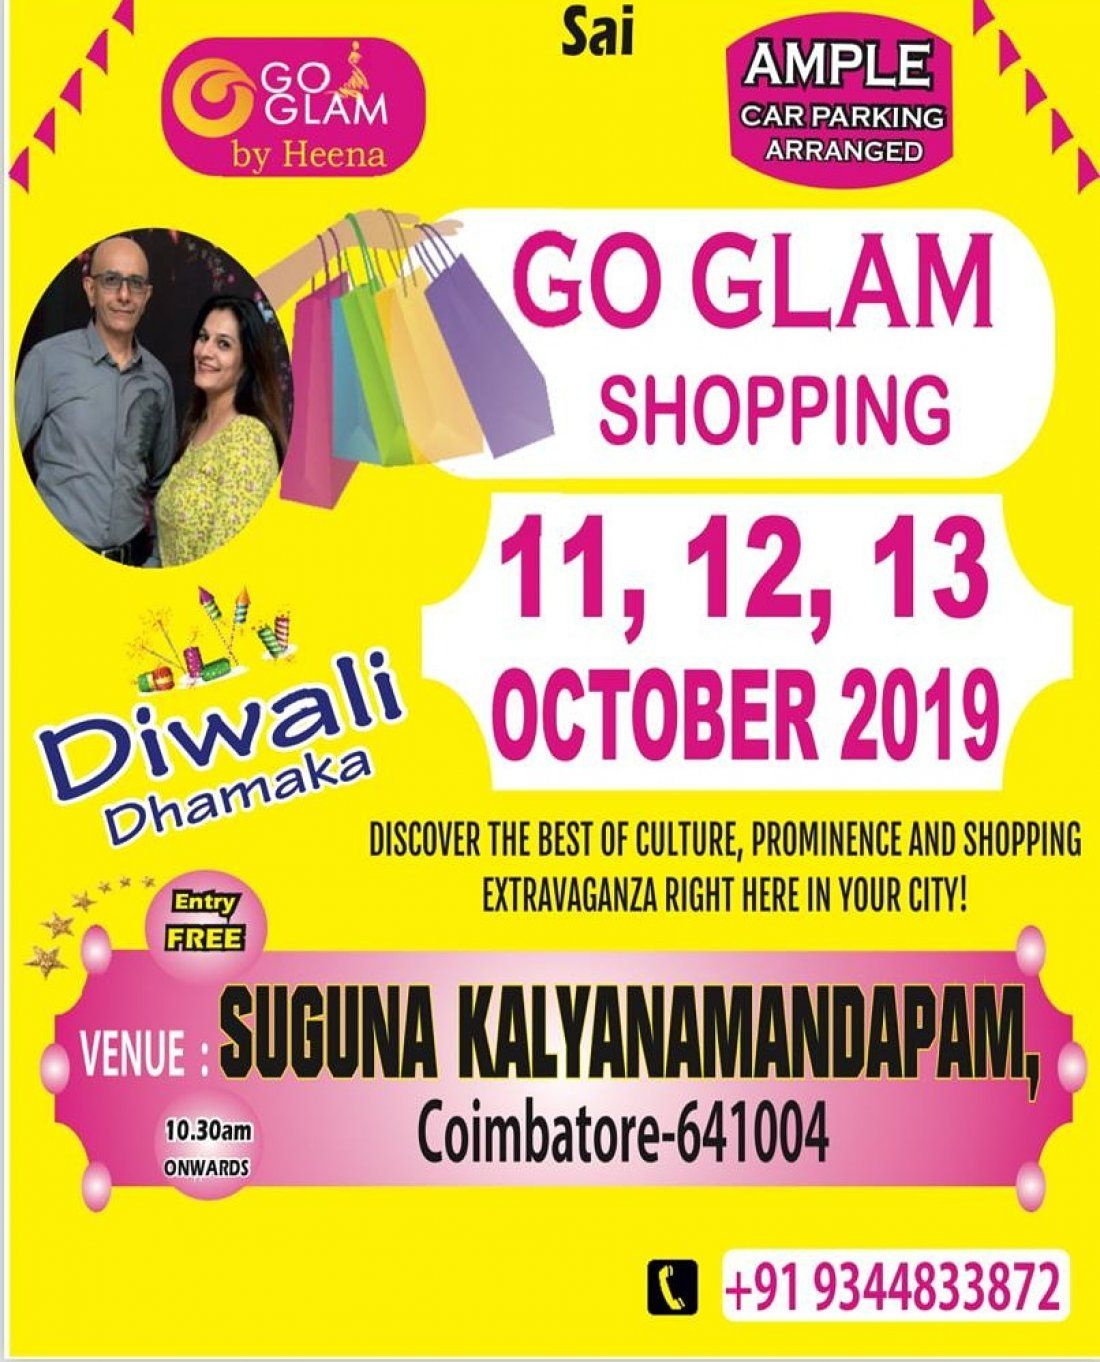 Go glam shopping exhibition